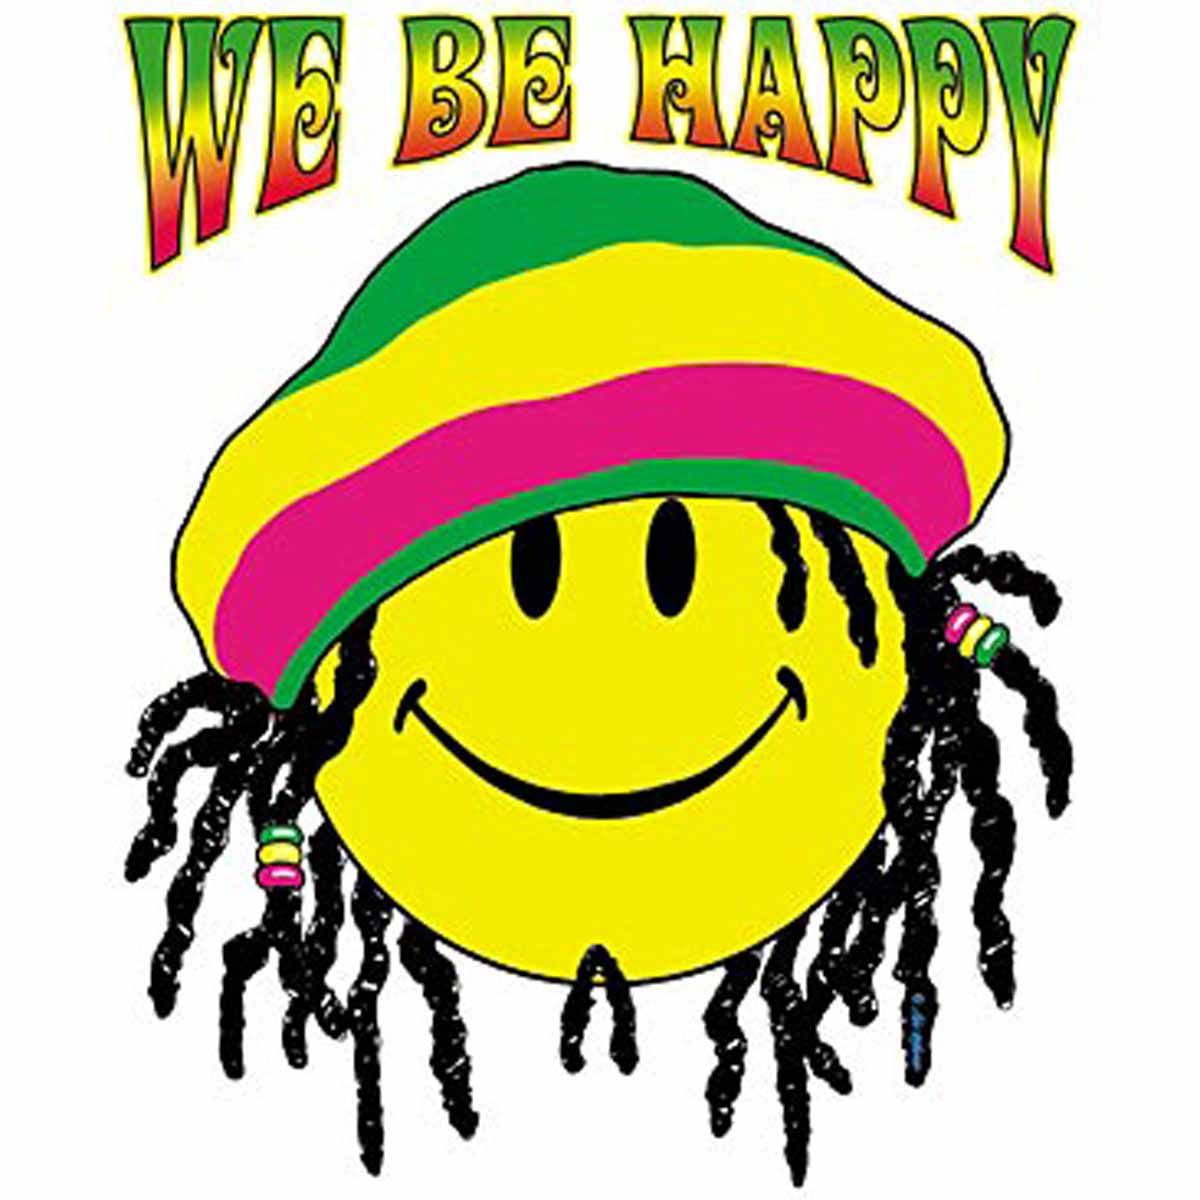 T-shirt femme manches courtes - Smiley néon fluo rasta We be happy - 12675